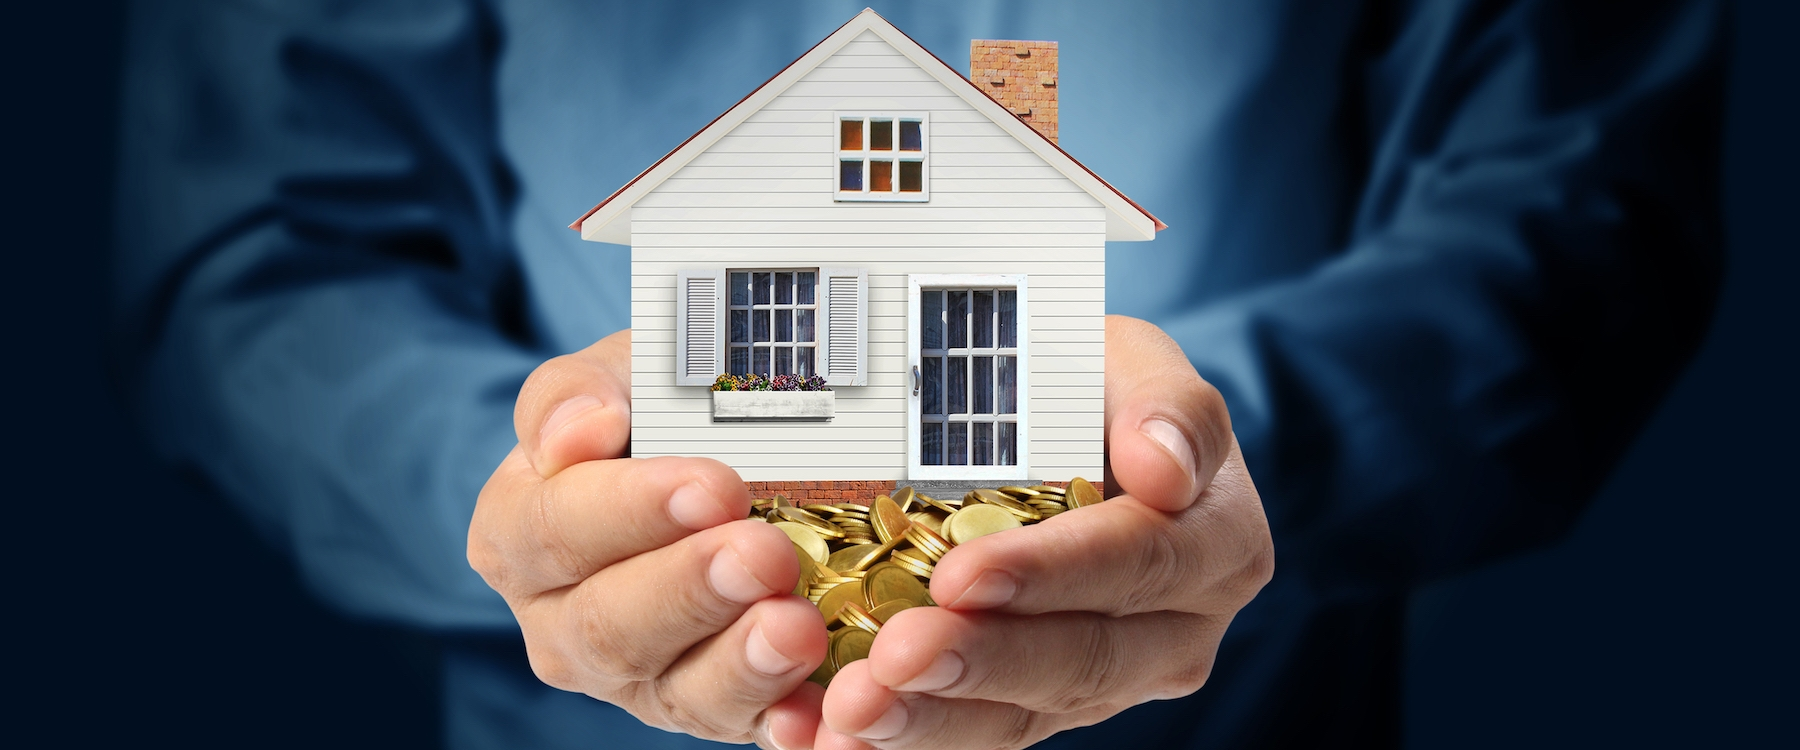 REFINANCING is easy with our professionals' help.